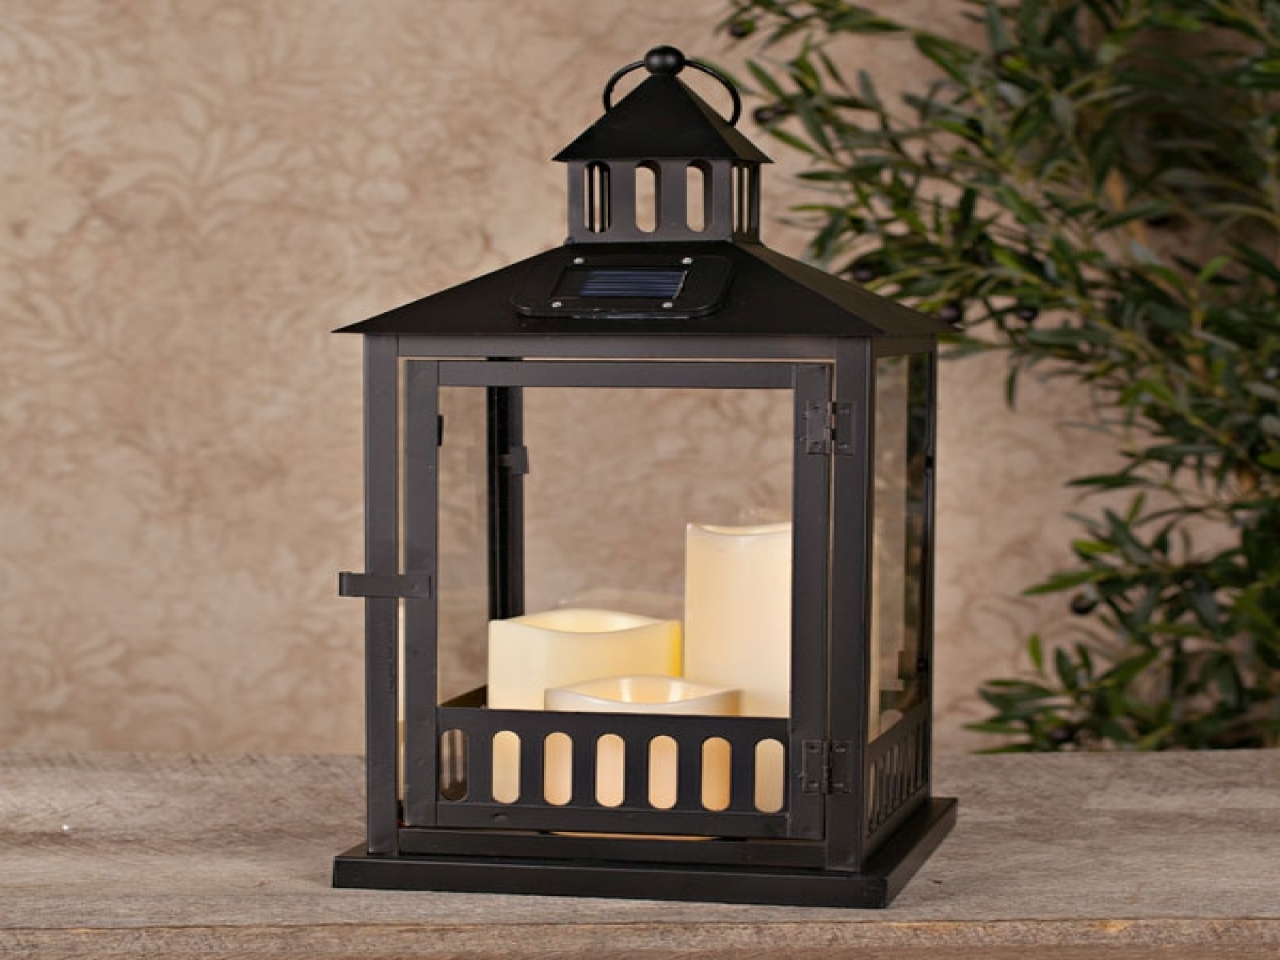 Most Recent Solar Post Lanterns Outdoor, Large Outdoor Solar Lanterns Solar With Large Outdoor Decorative Lanterns (View 11 of 20)